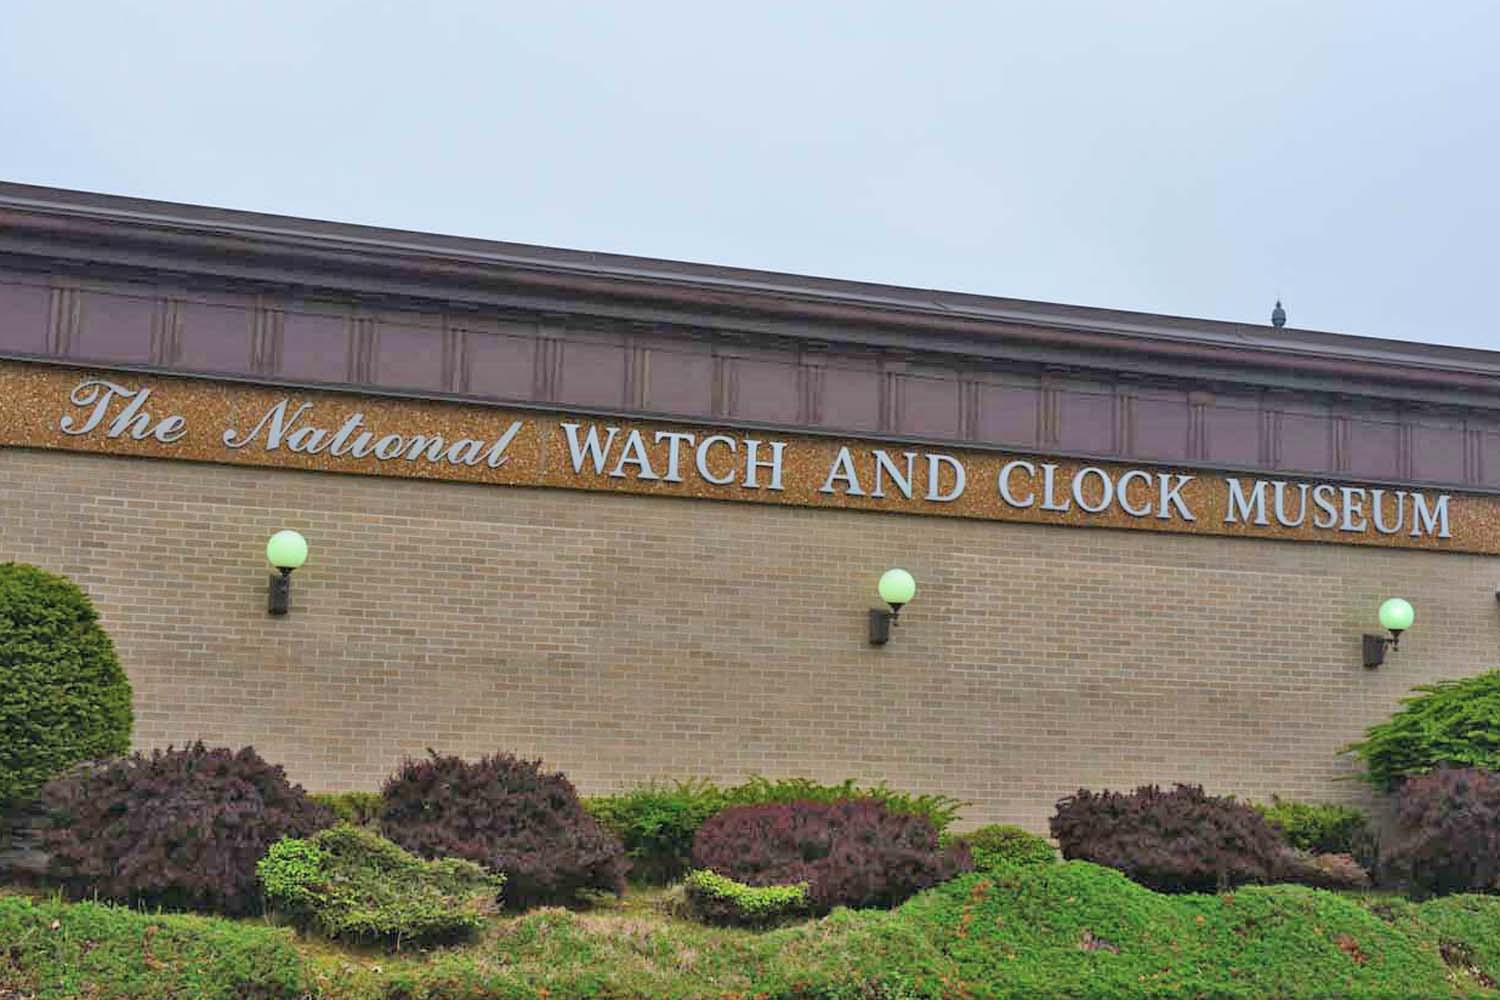 The National Watch and Clock Museum Lancaster, PA